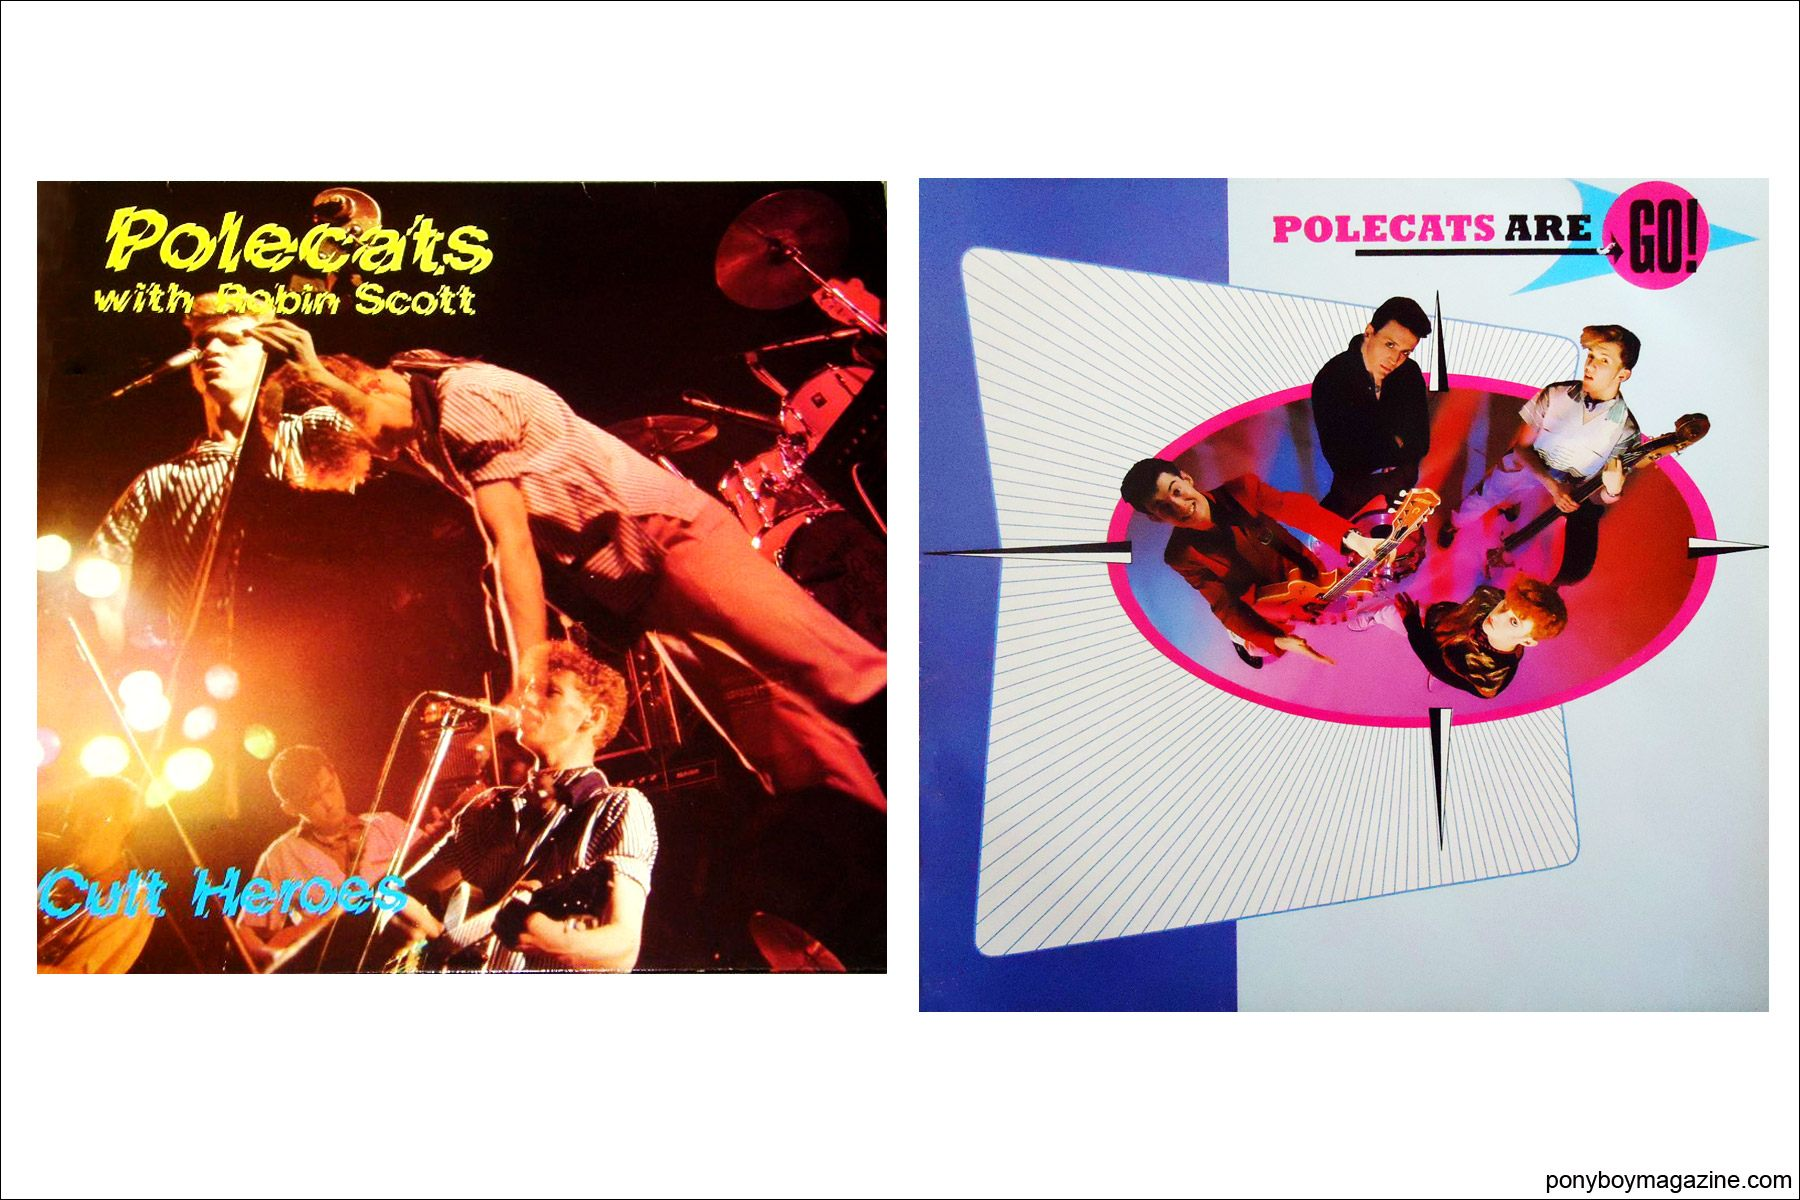 Record covers for UK 70's-80's rockabilly band Polecats. Ponyboy Magazine.